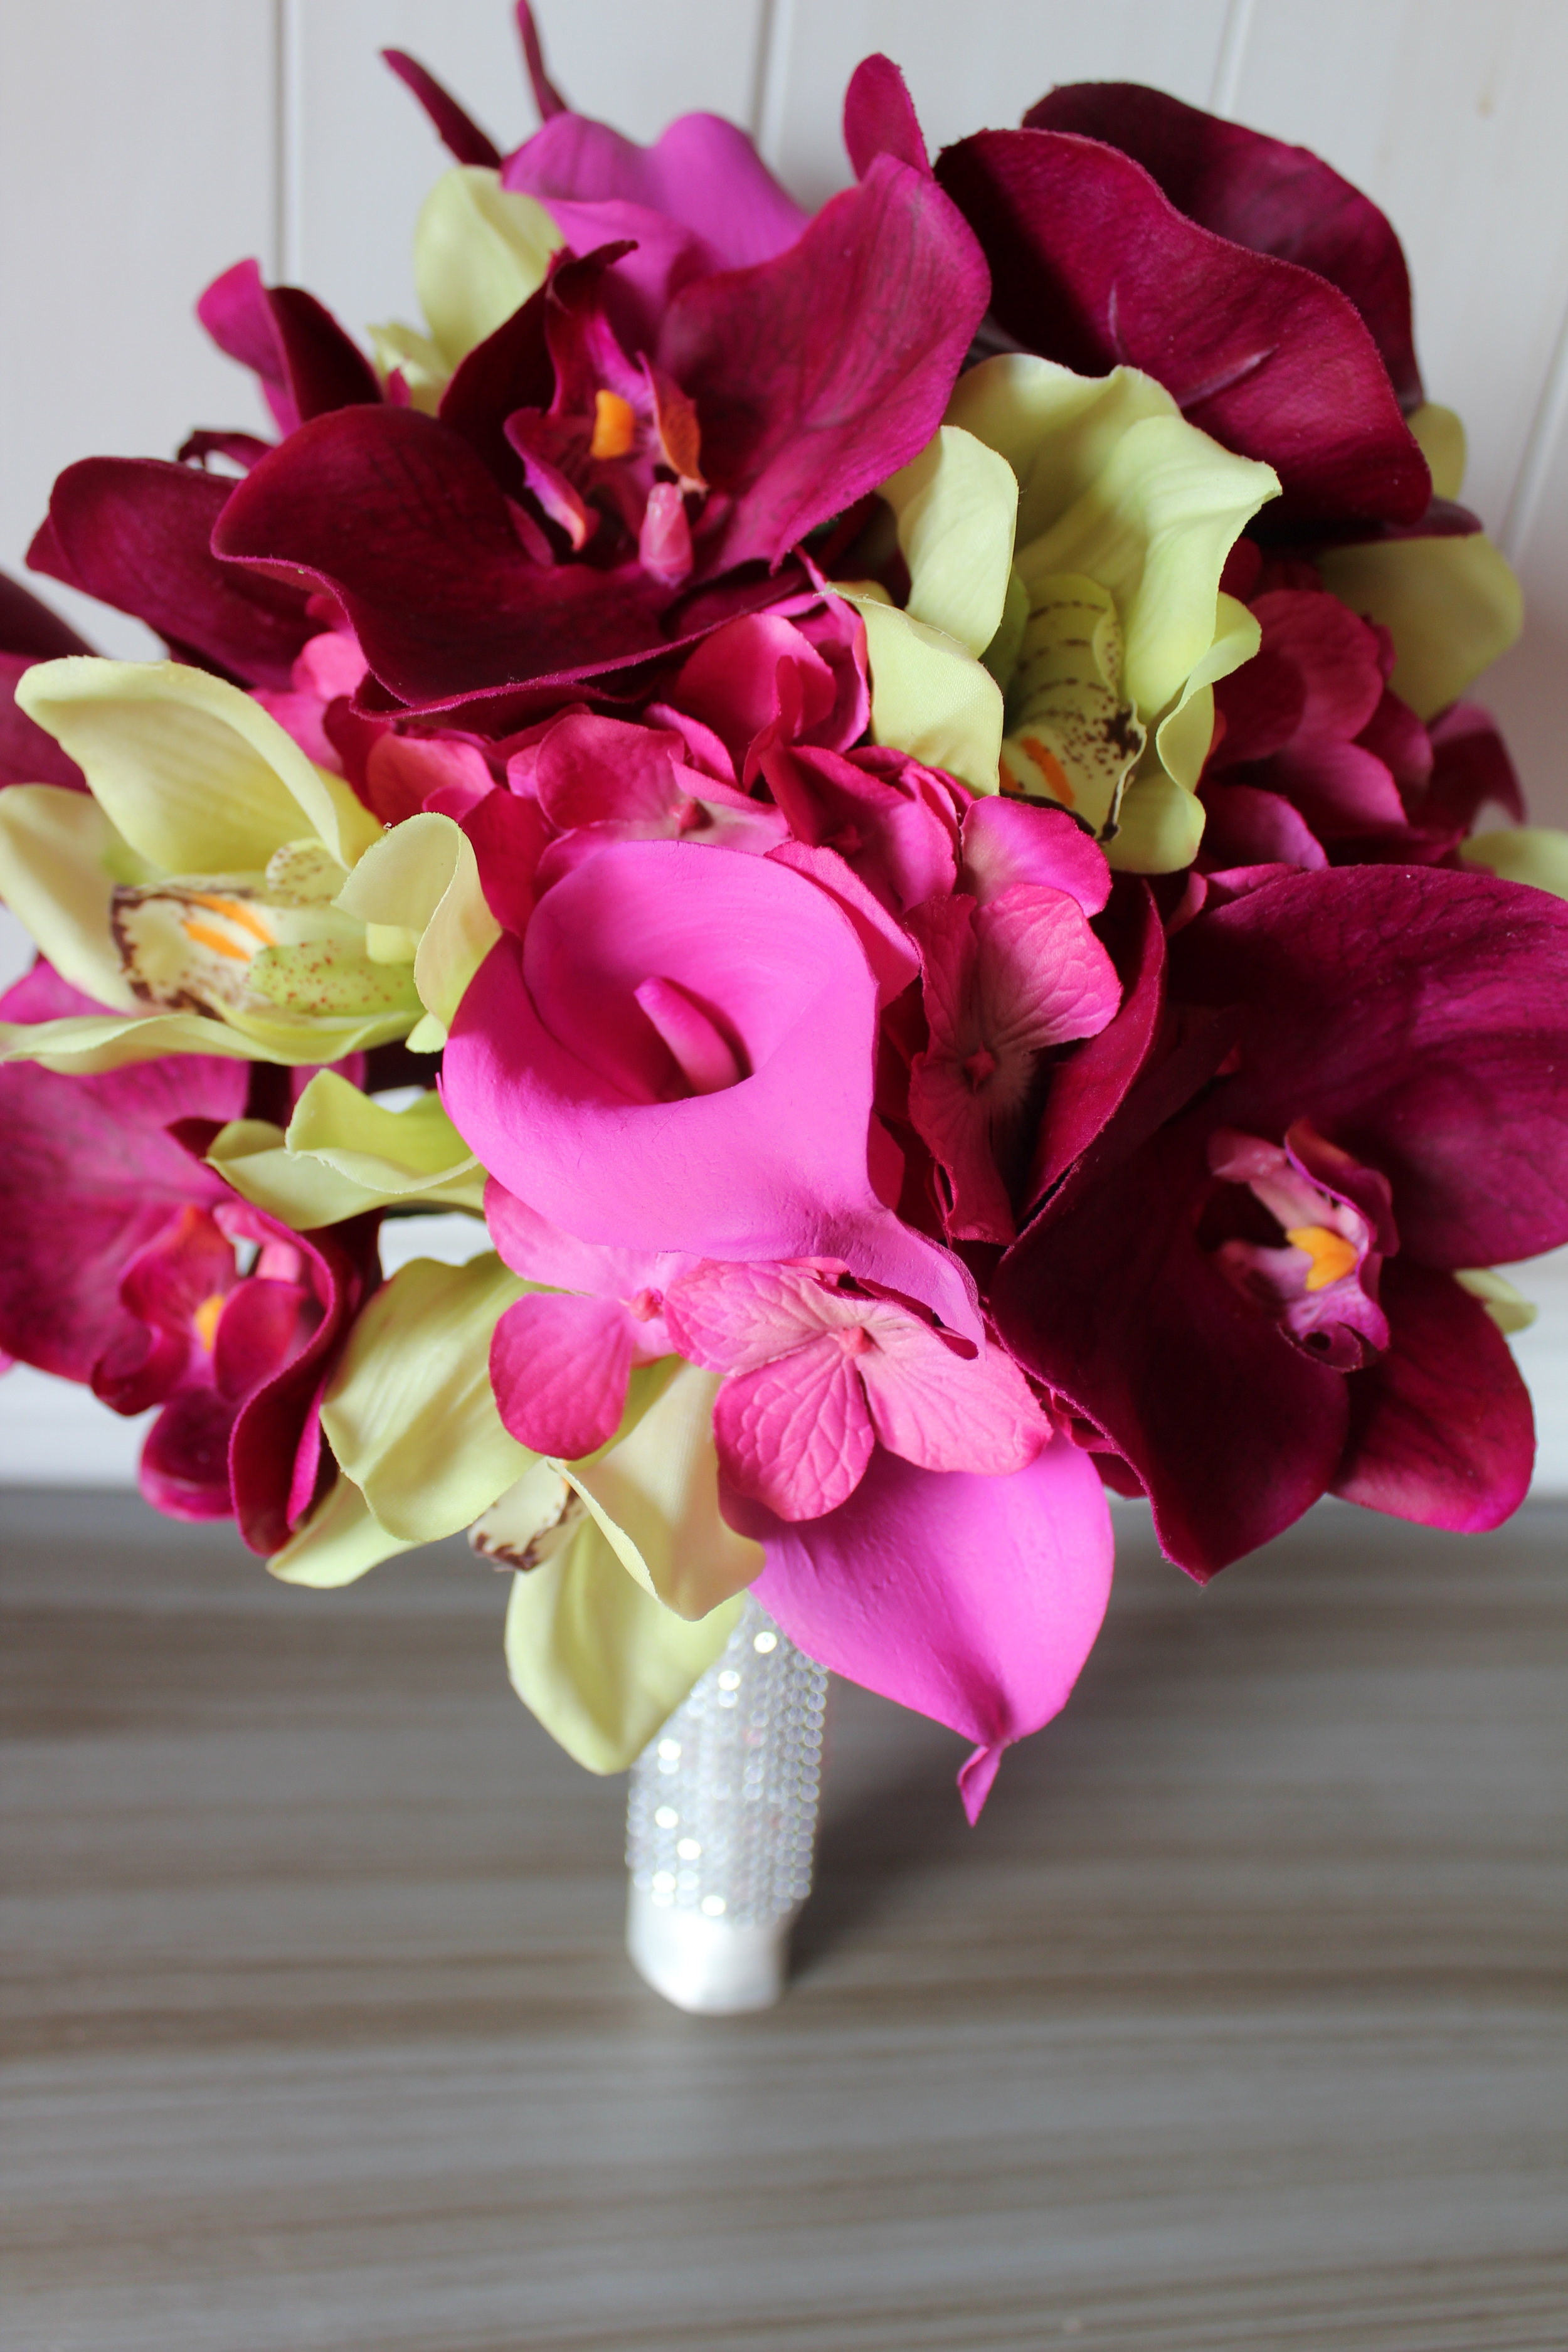 The destination wedding bridal bouquet includes Lime Orchids, Pink Calla Lilies, Pink Hydrangea, and deep pink Orchids.